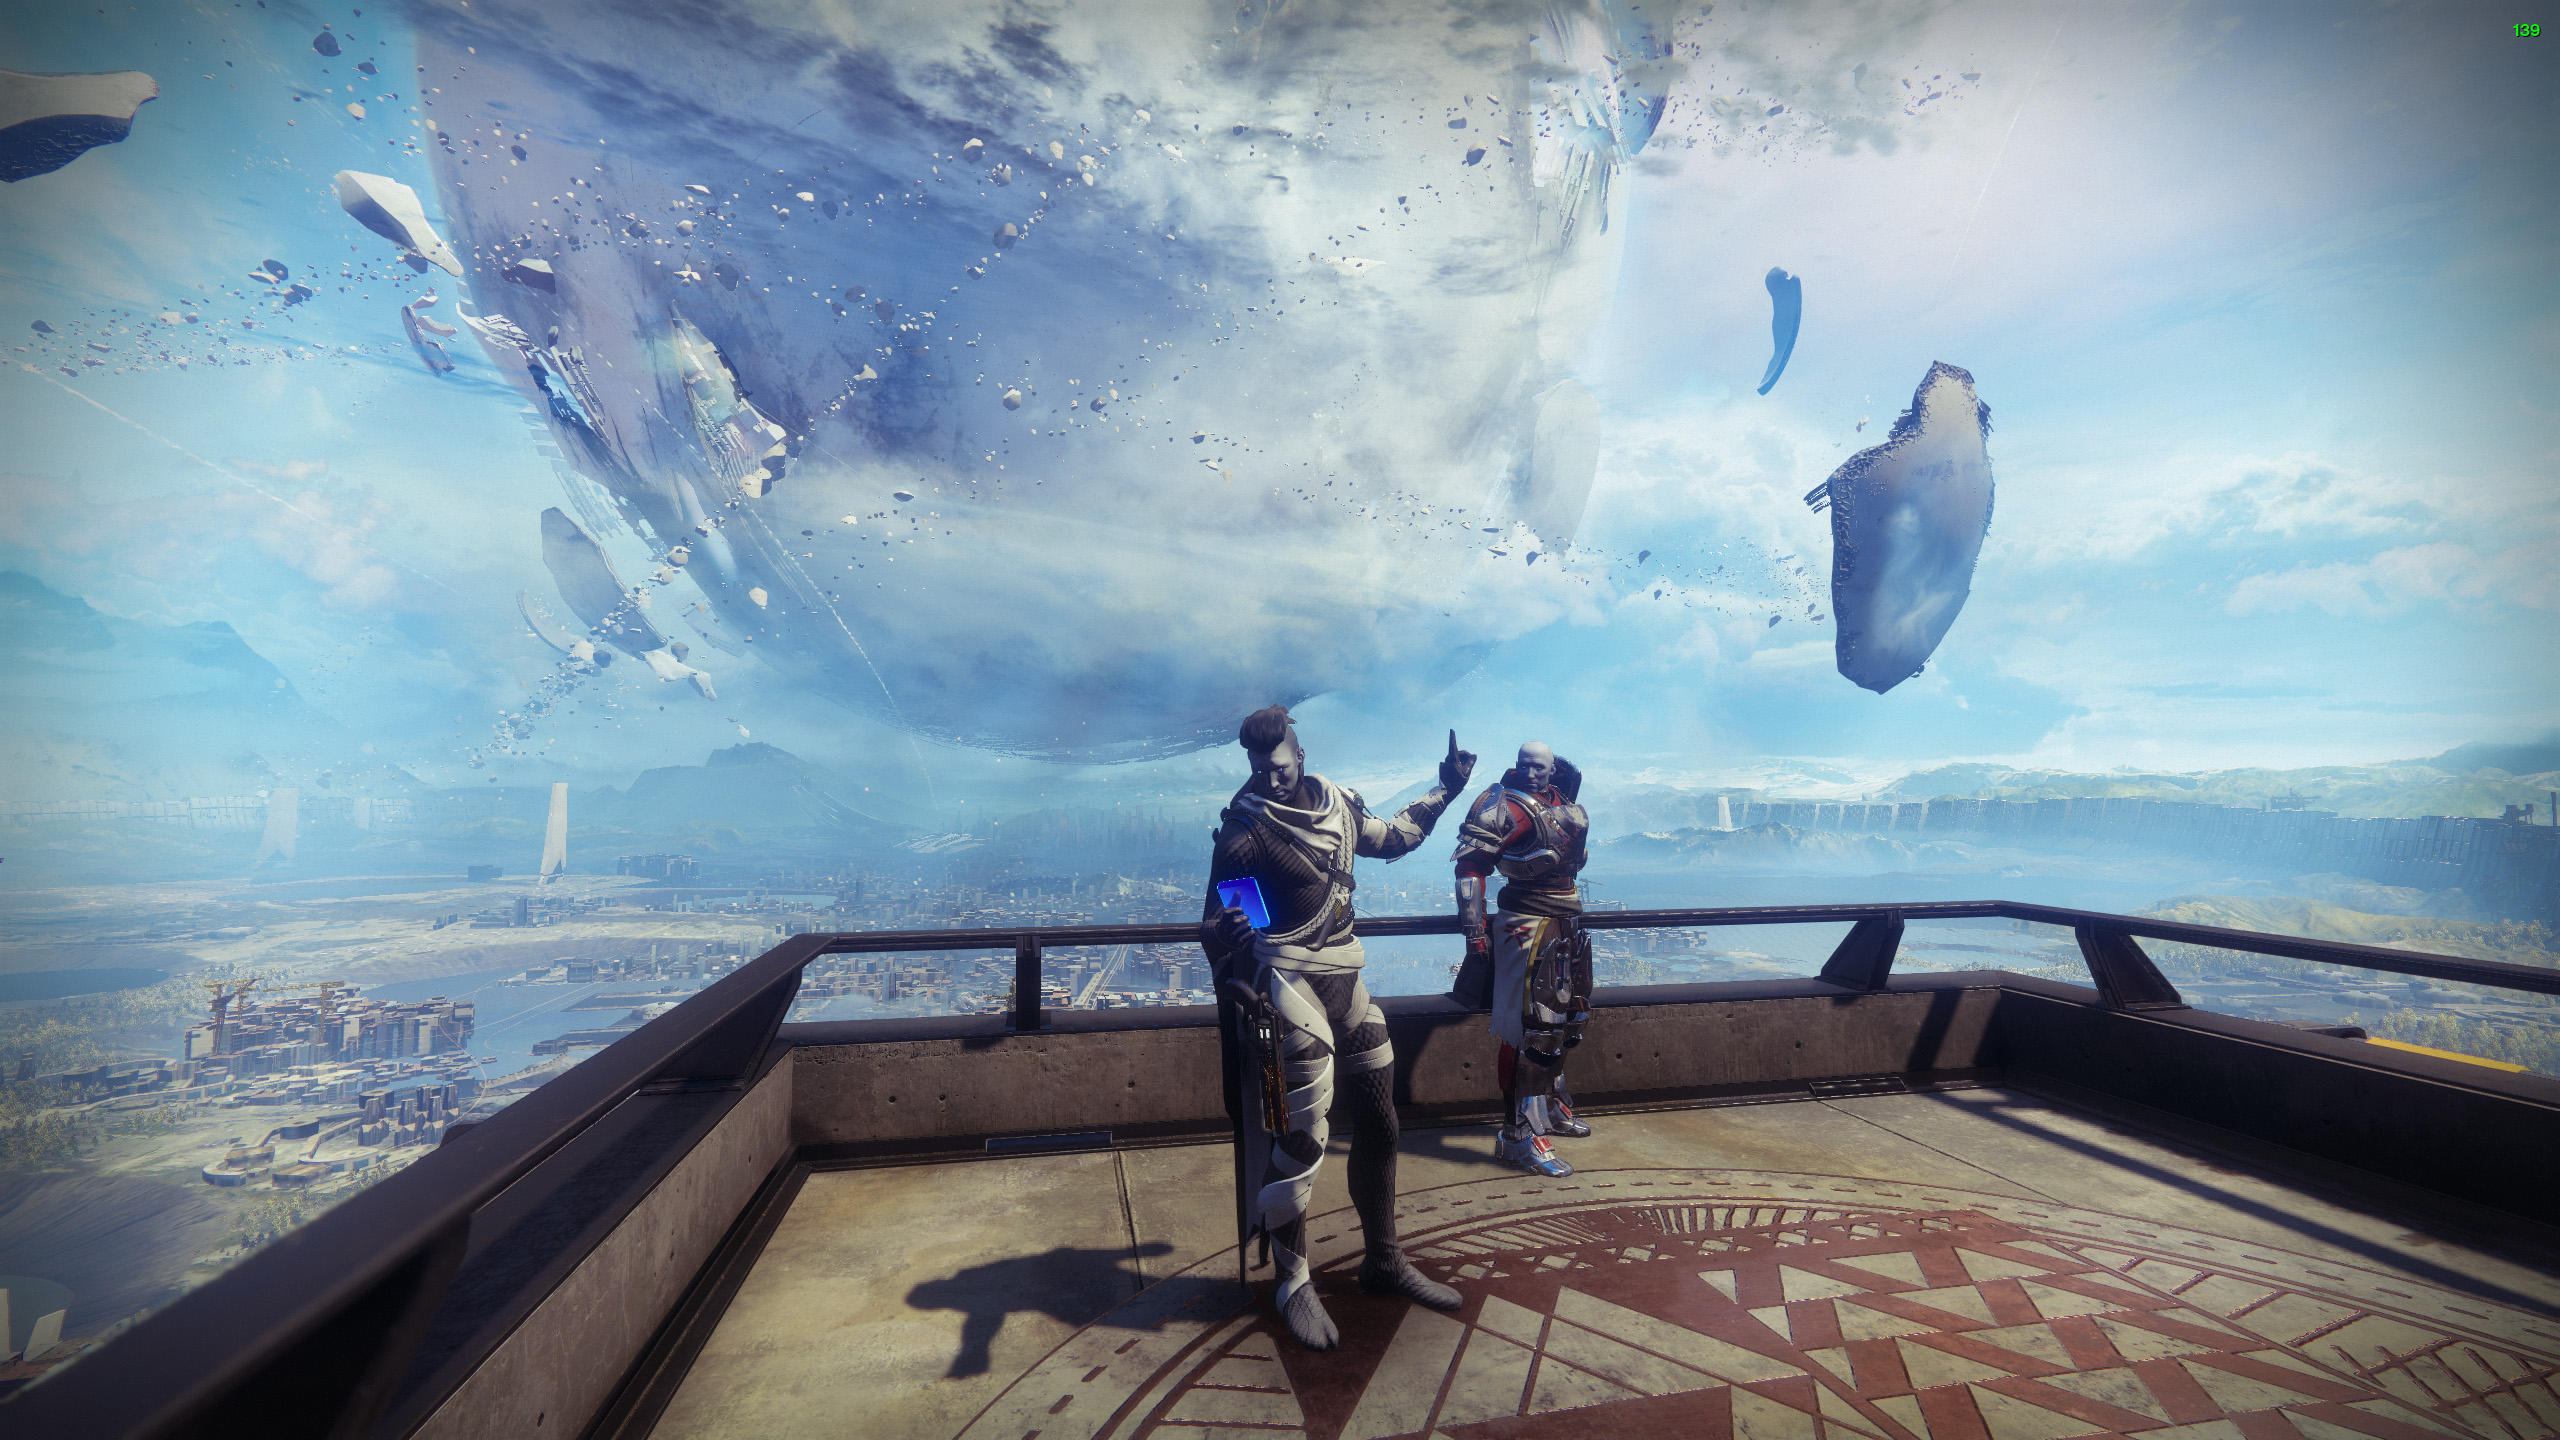 How to Get the Heart of the City Emblem in Destiny 2 | Shacknews